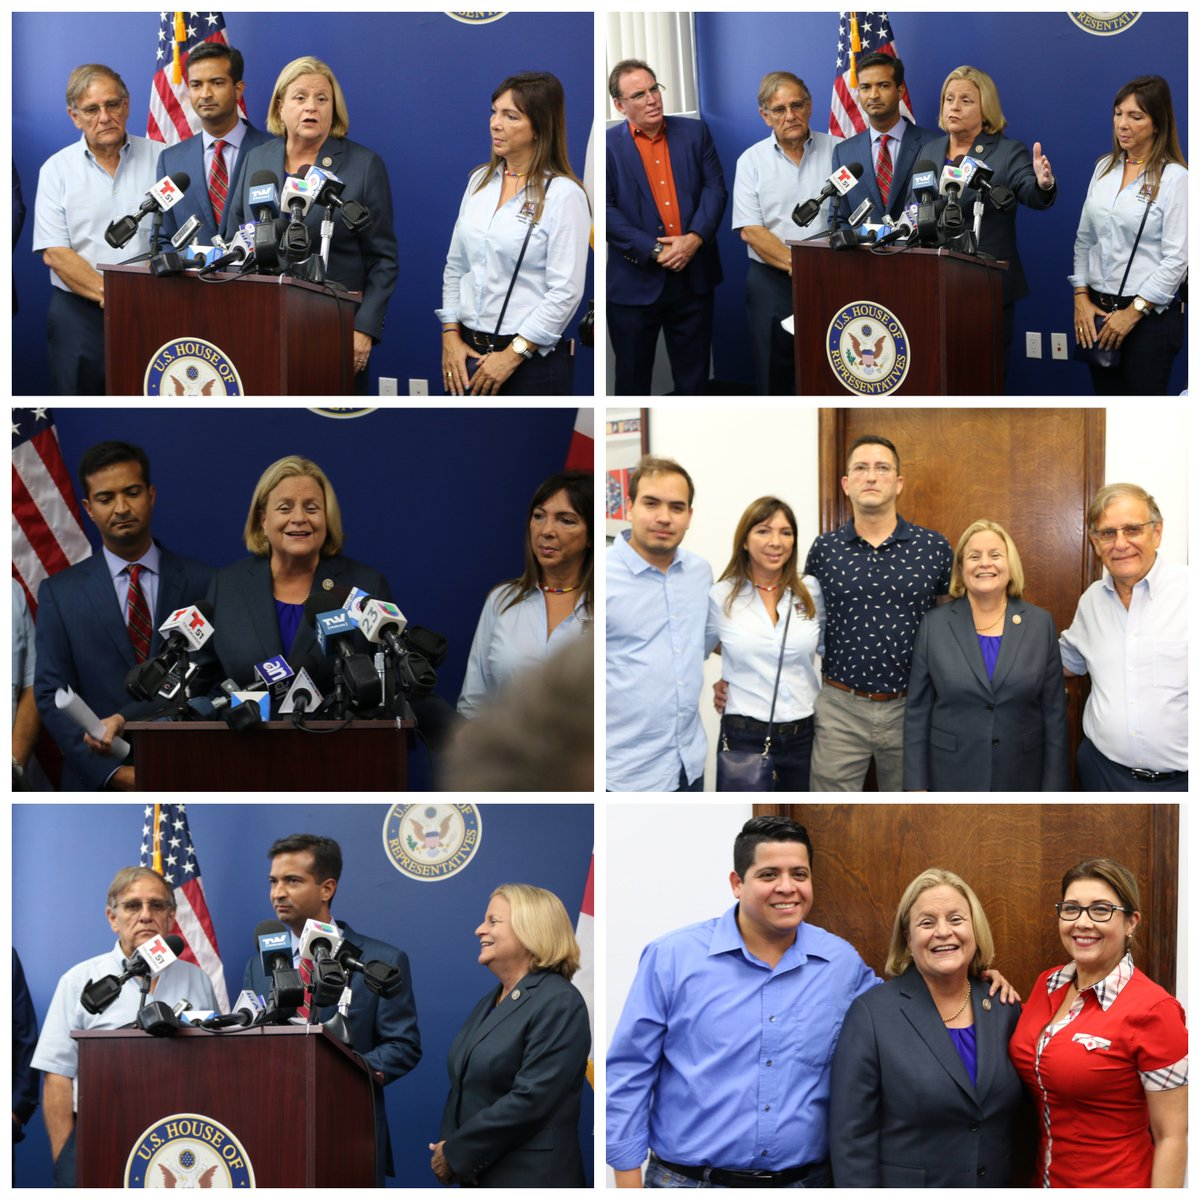 Joined @RepCurbelo, @MarioDB+@RepSires in urging the Admin to demand investigation into Fernando Alban's death+sanction those responsible. #US will not b fooled by lies spread by the #Maduro regime+will continue 2 hold accountable #humanrights abuses against the ppl of #Venezuela